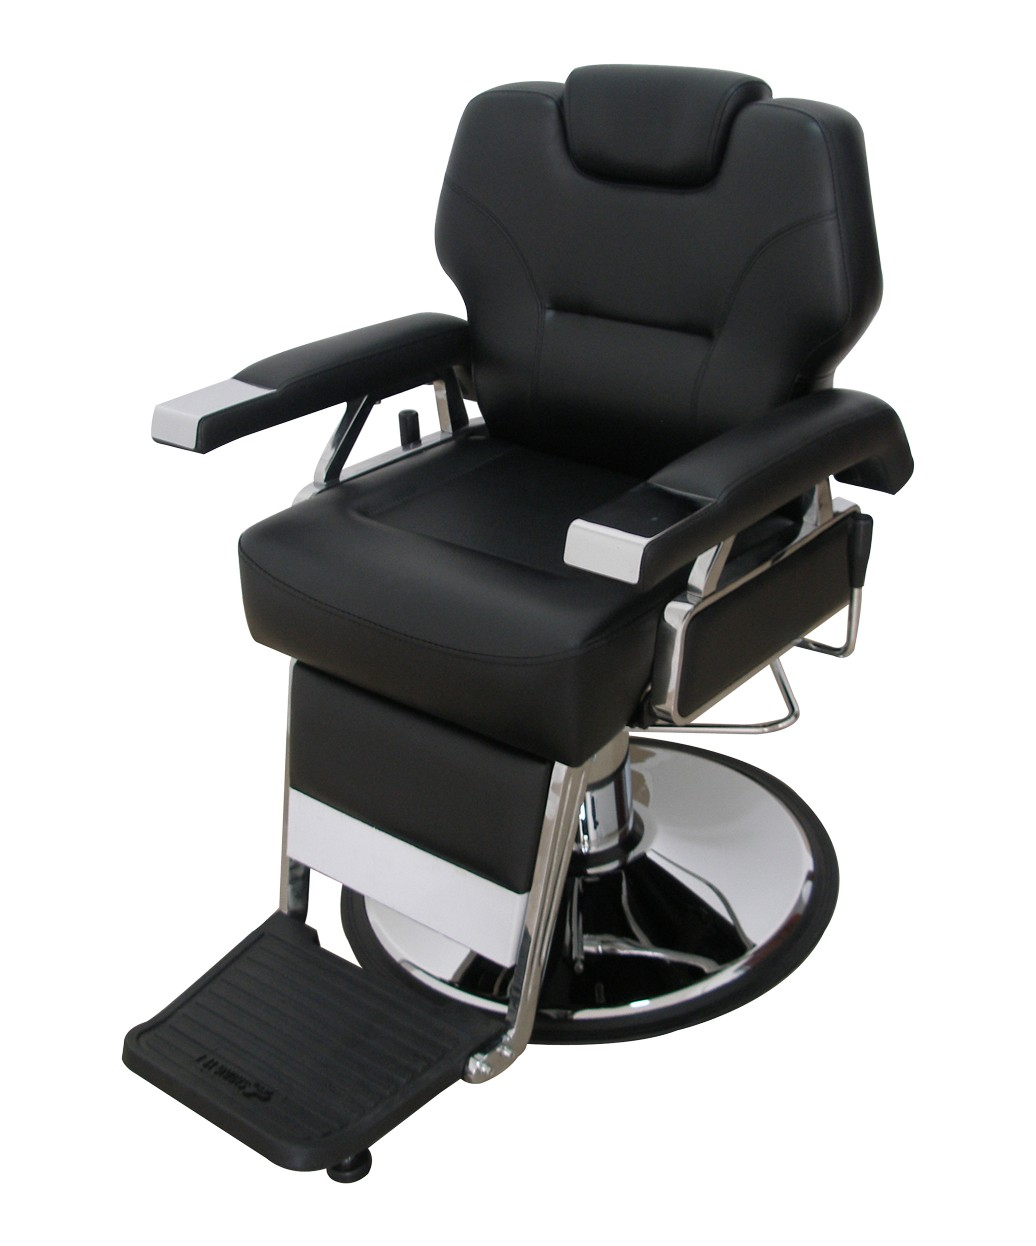 K O Professional Barber Chair